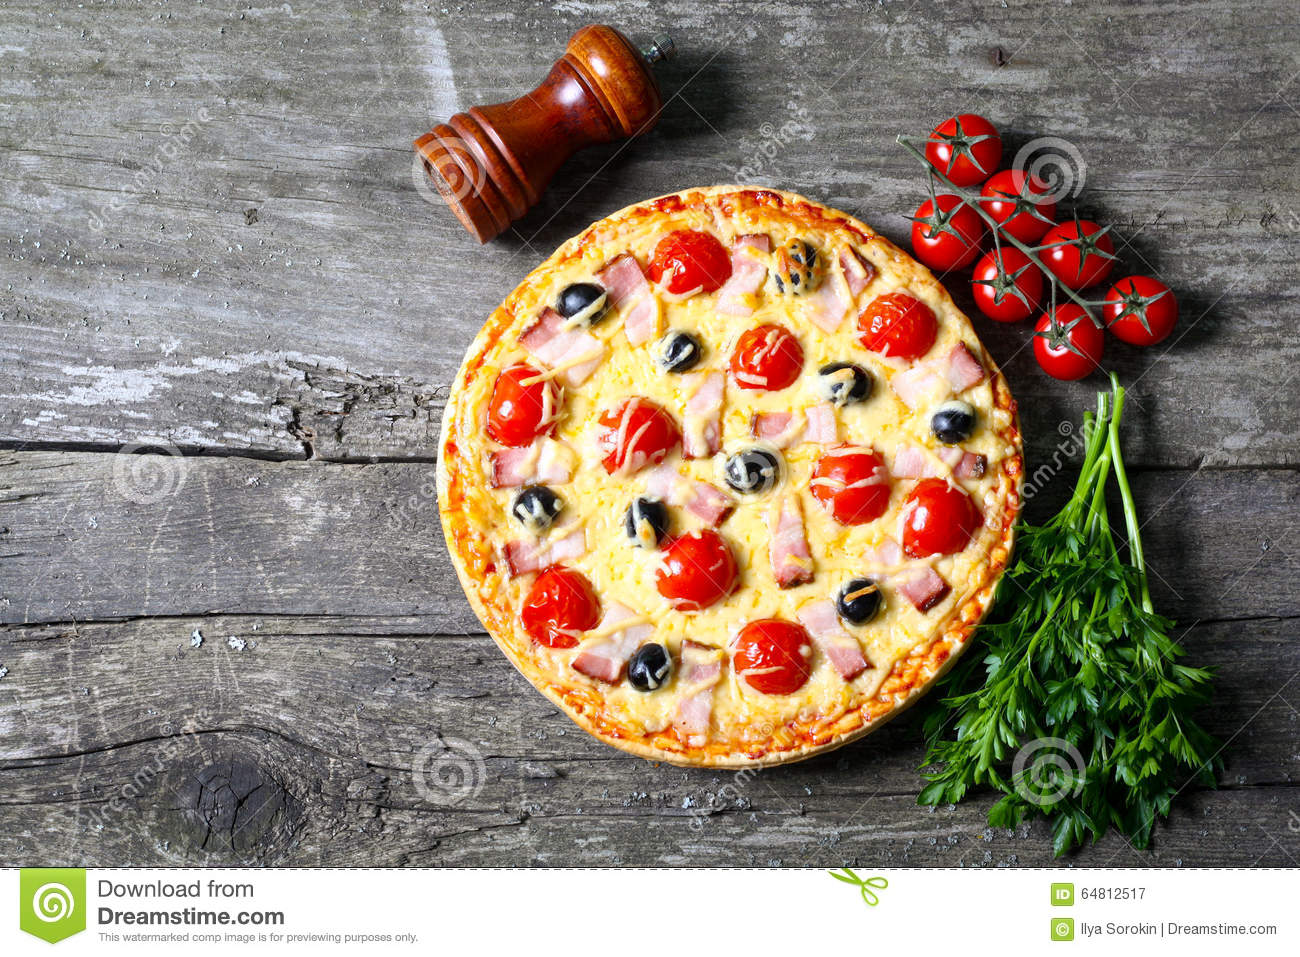 Pizza With Bacon, Olives And Tomato Stock Photo - Image: 64812517